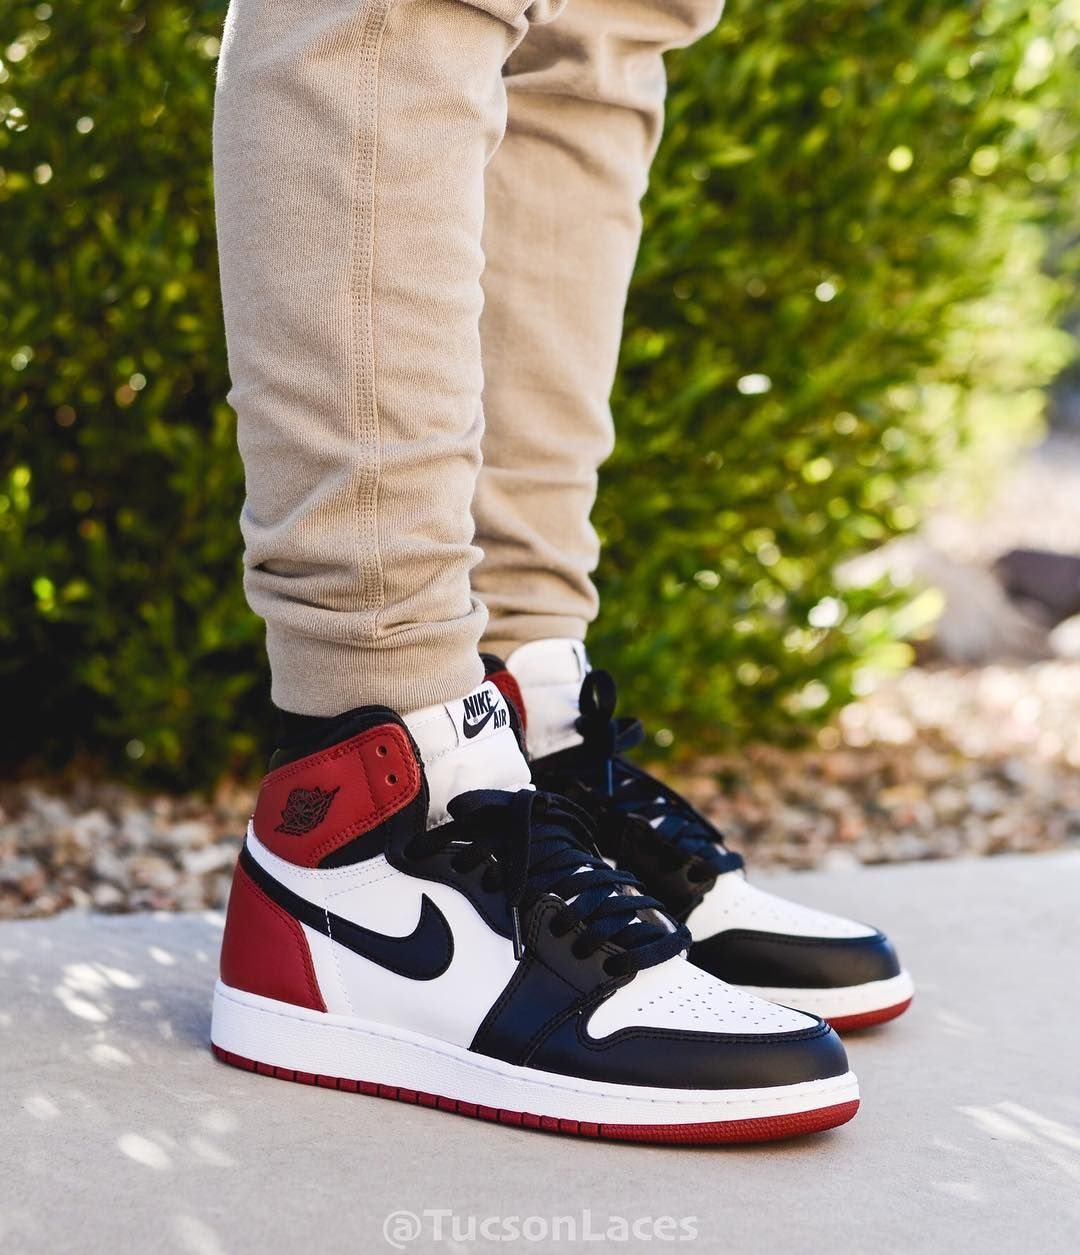 81dbd815f52 Air Jordan 1 Retro High GS